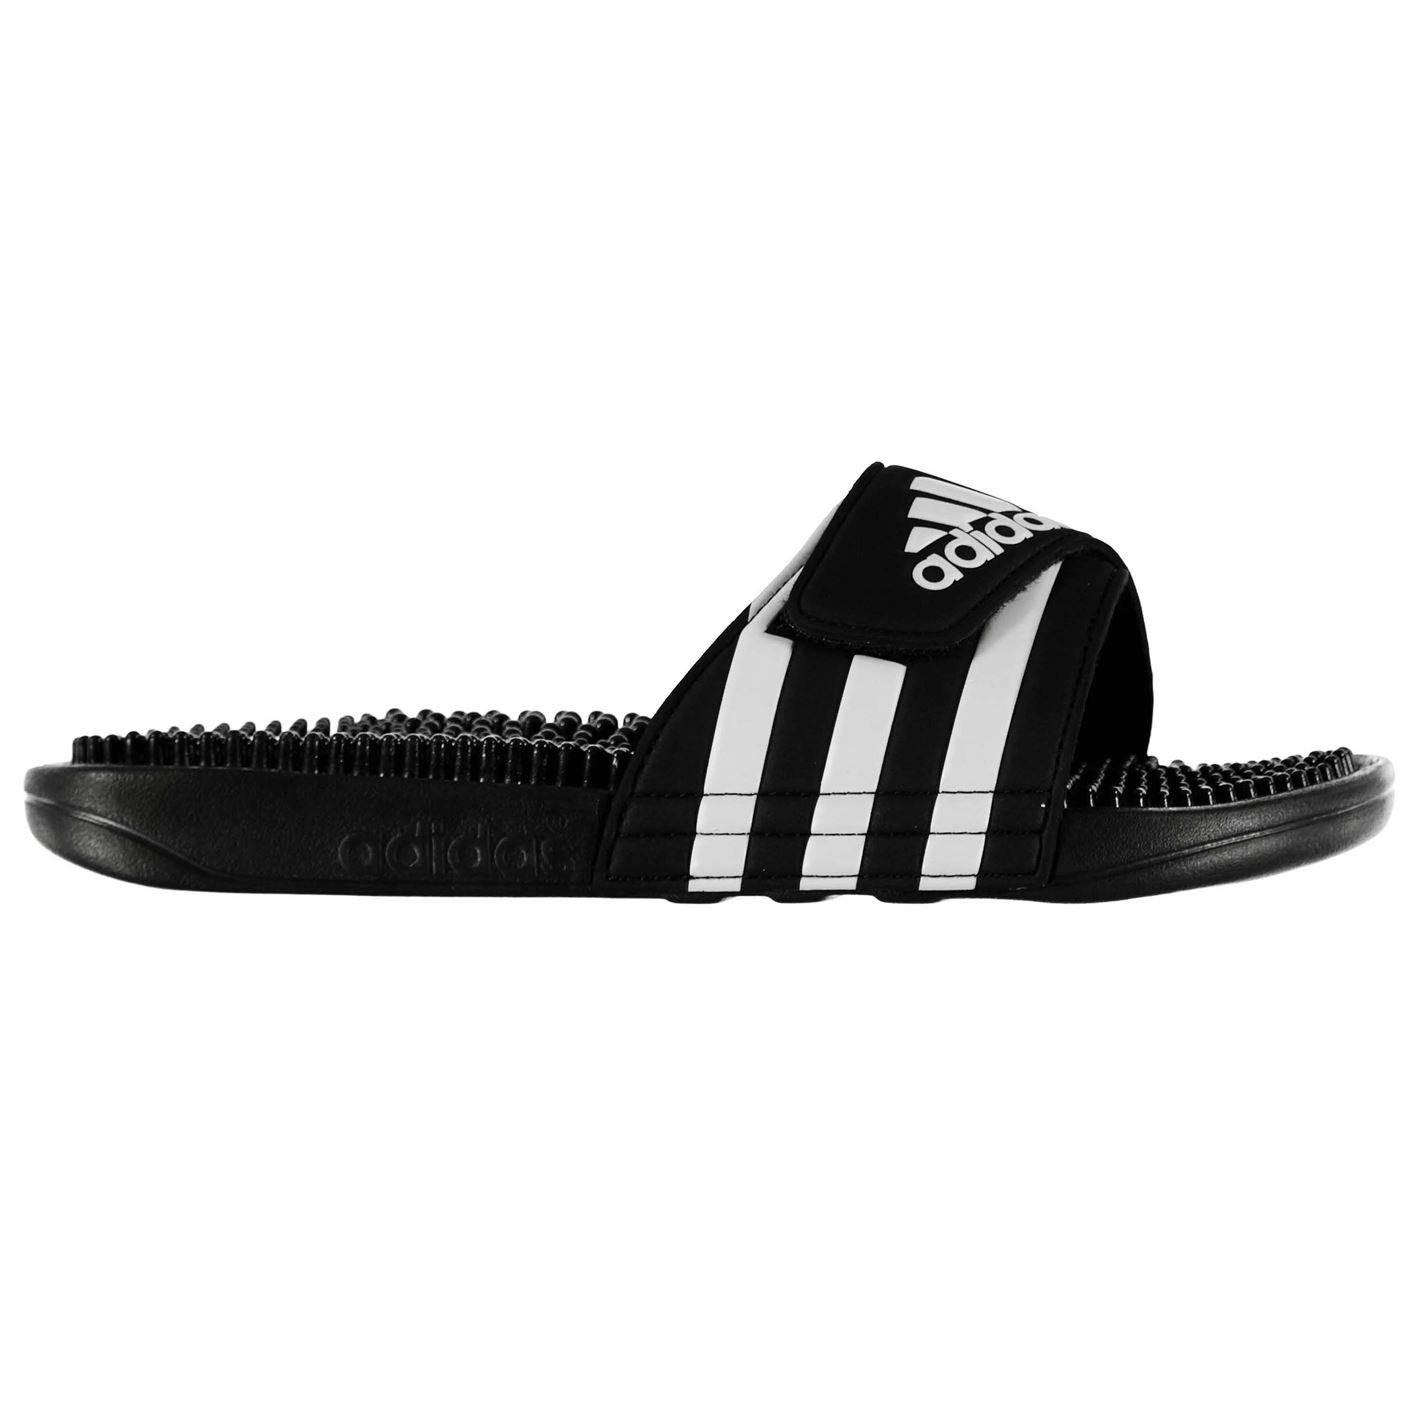 60058c02c NEW ADIDAS ADISSAGE MENS FLIP FLOPS SANDALS POOL SHOES BEACH SLIDES UK 6-14  (UK 8   EUR 42   US 8   26.5 CM »)  Amazon.co.uk  Shoes   Bags